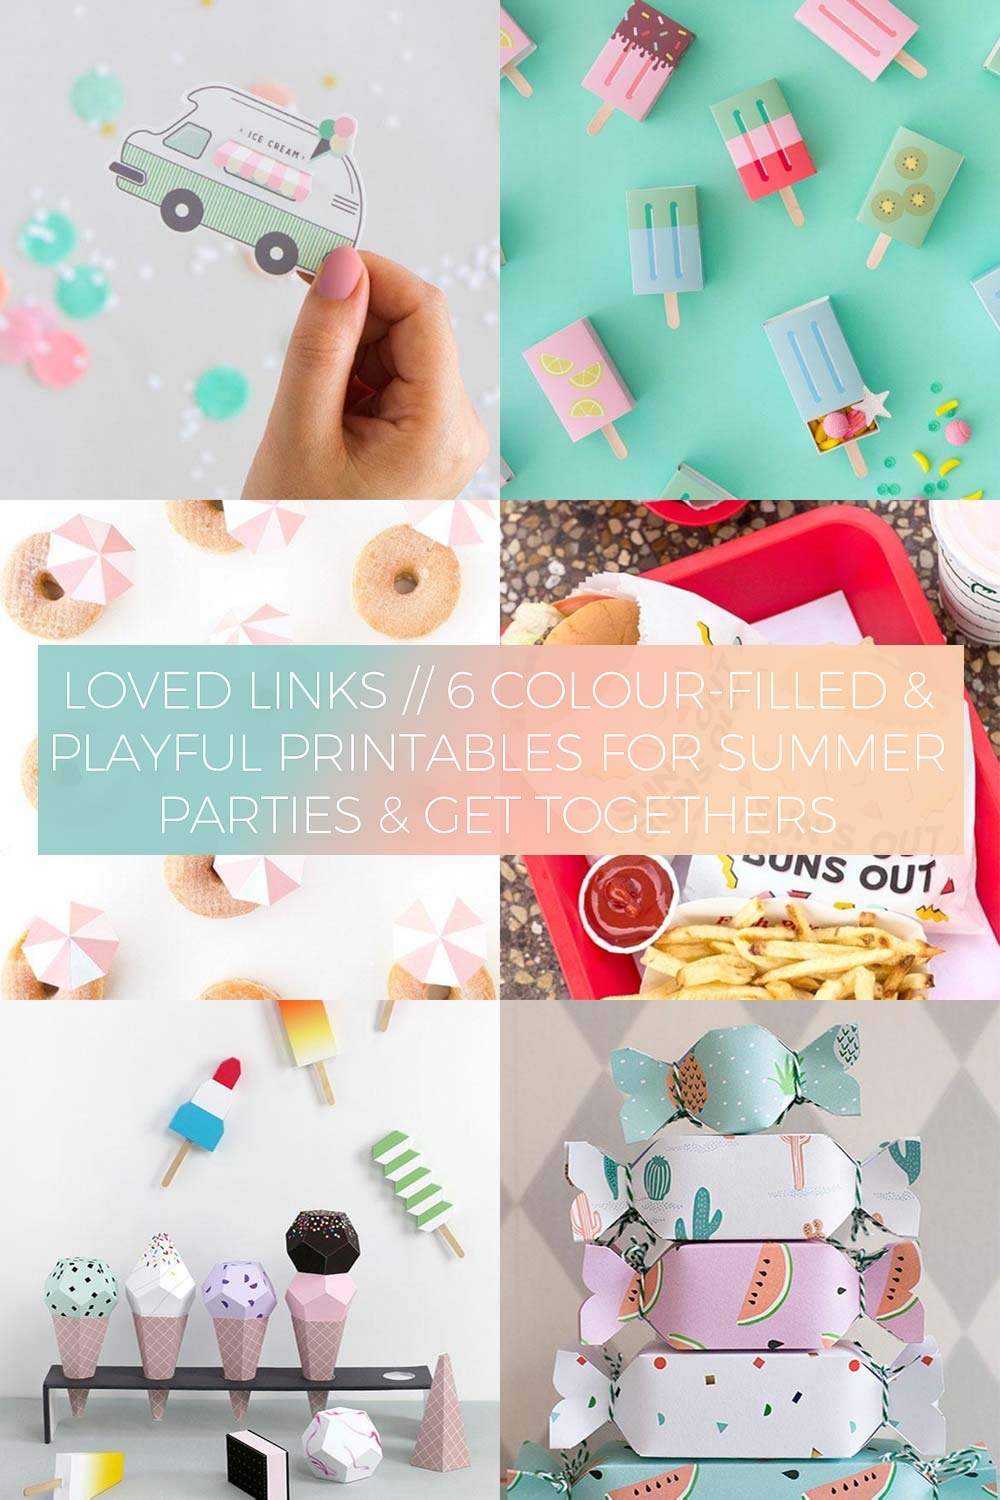 6 Colour-Filled & Playful Printables for Summer Parties & Get Togethers // Loved Links